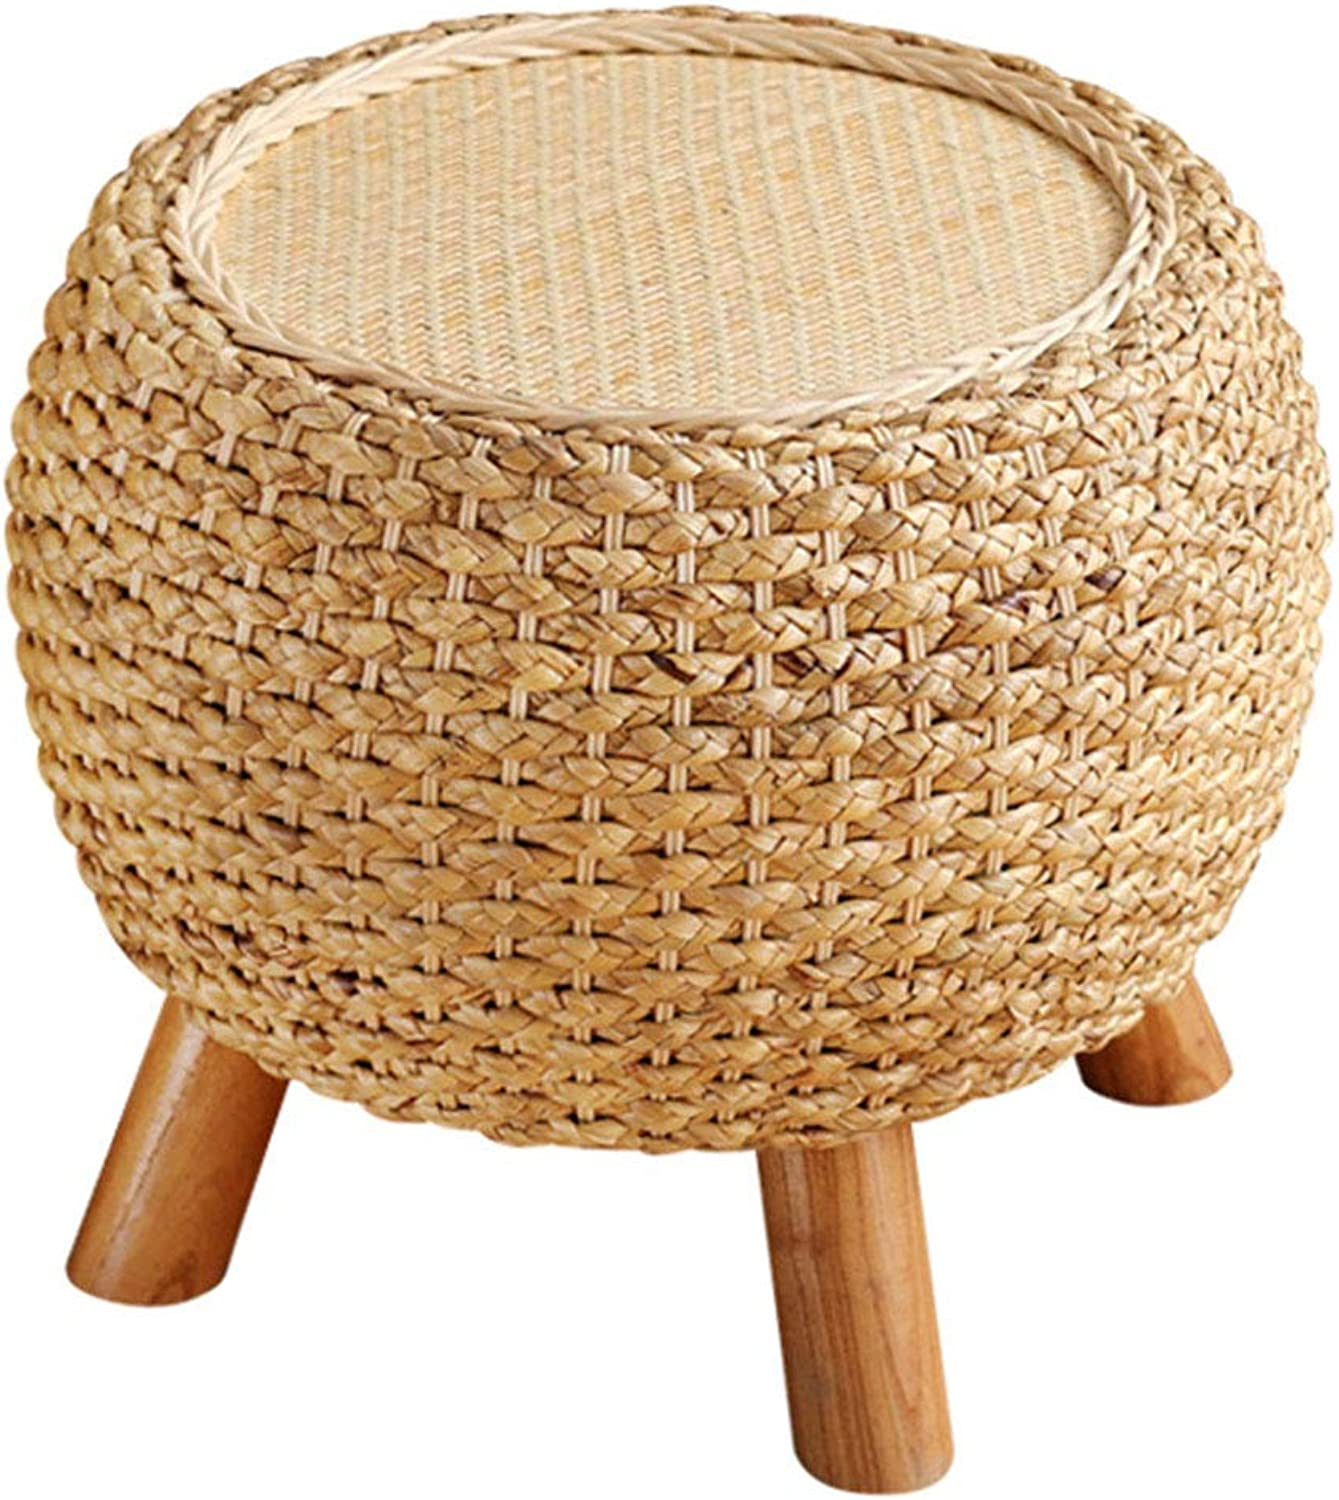 Rattan Stool shoes Bench,Practical,Wear-Resistant,Strong Load-Bearing,Wooden Material,Environmentally Friendly,Suitable for Everyone,Suitable for Bedroom,Living Room,36x35cm